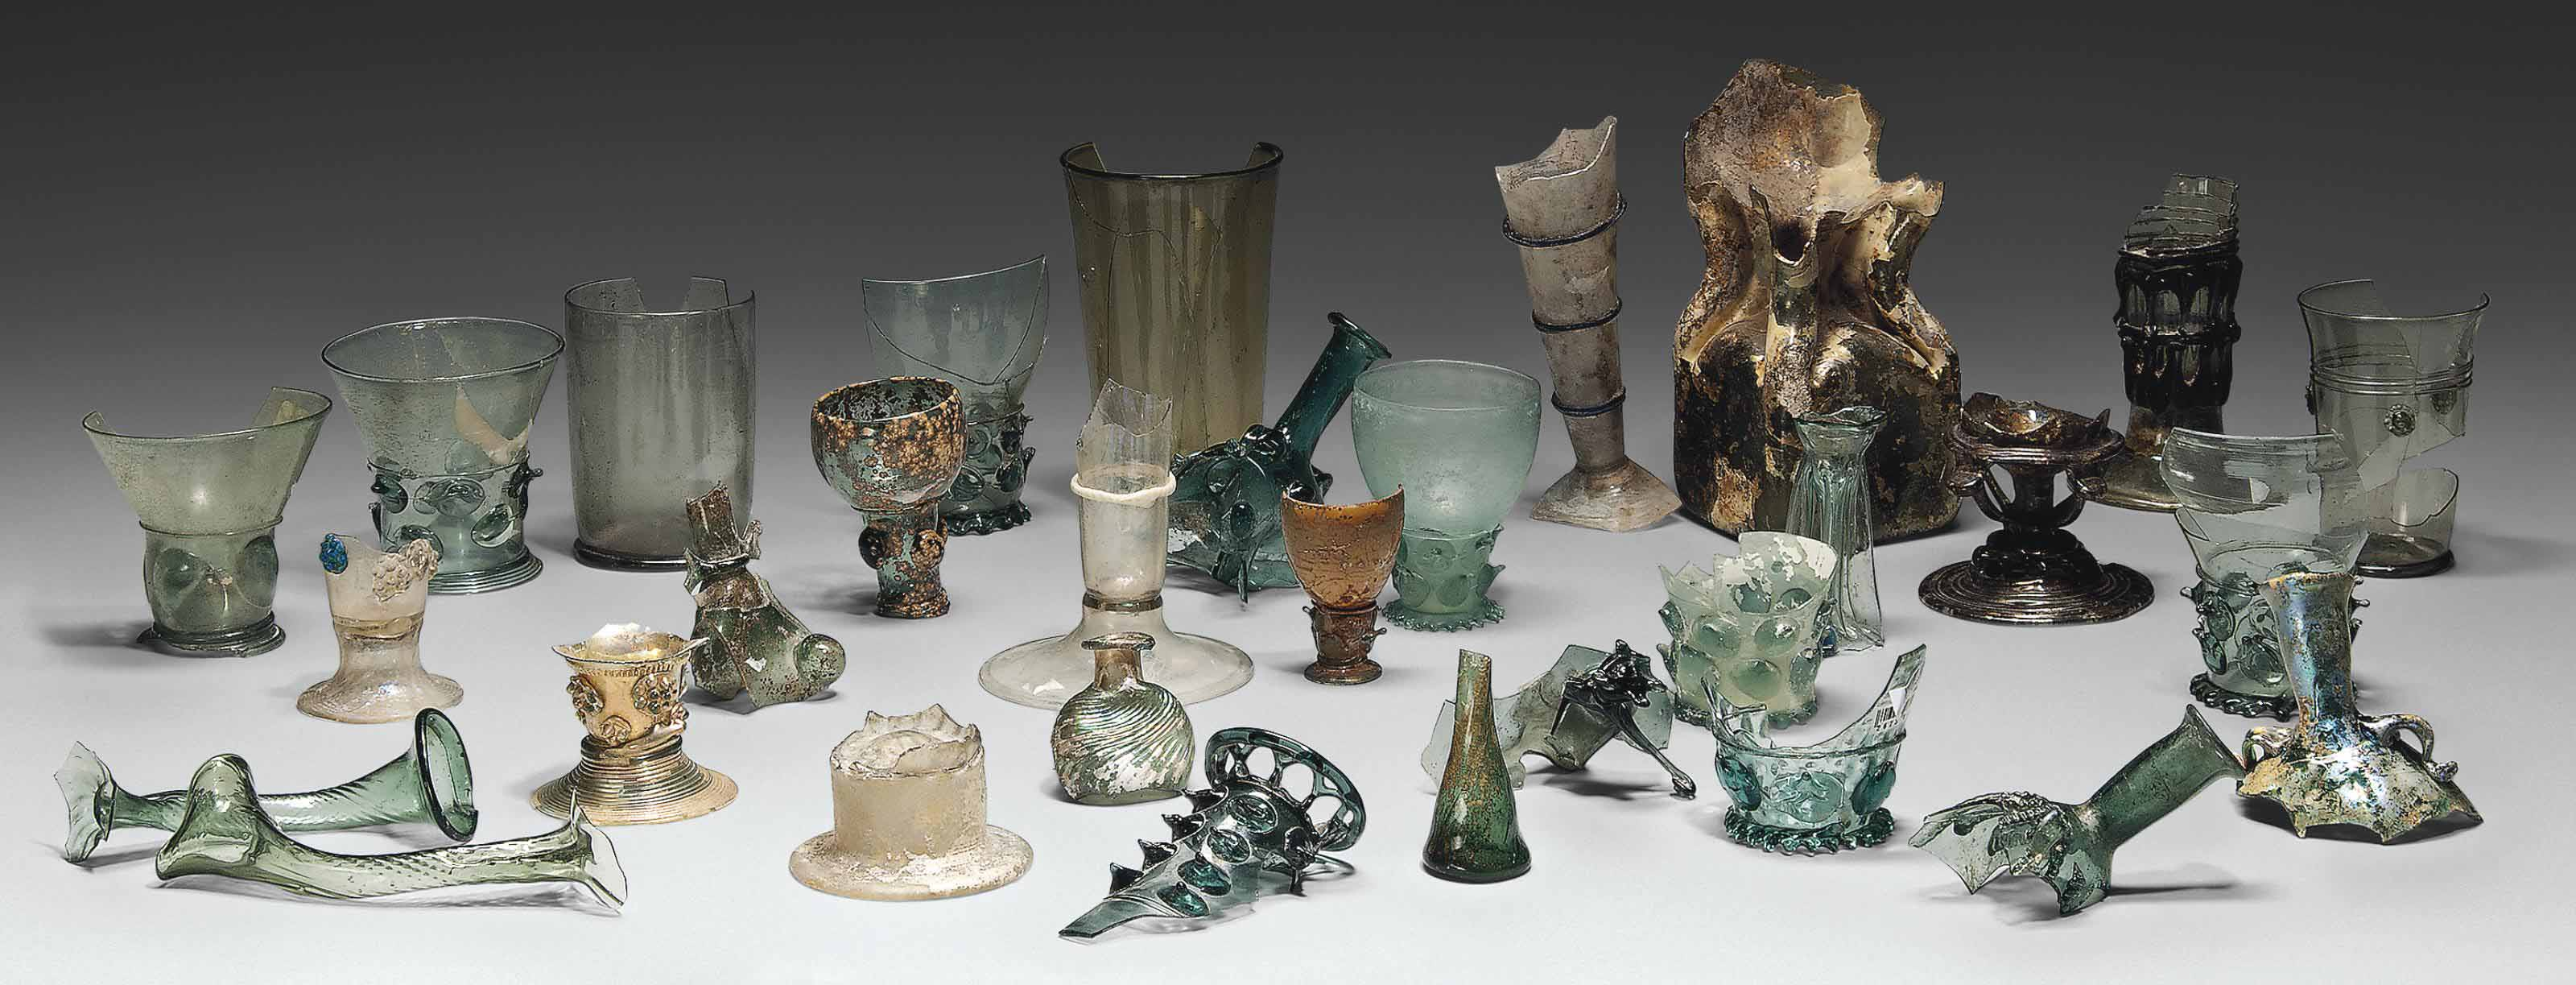 A STUDY COLLECTION OF EARLY GLASS FRAGMENTS